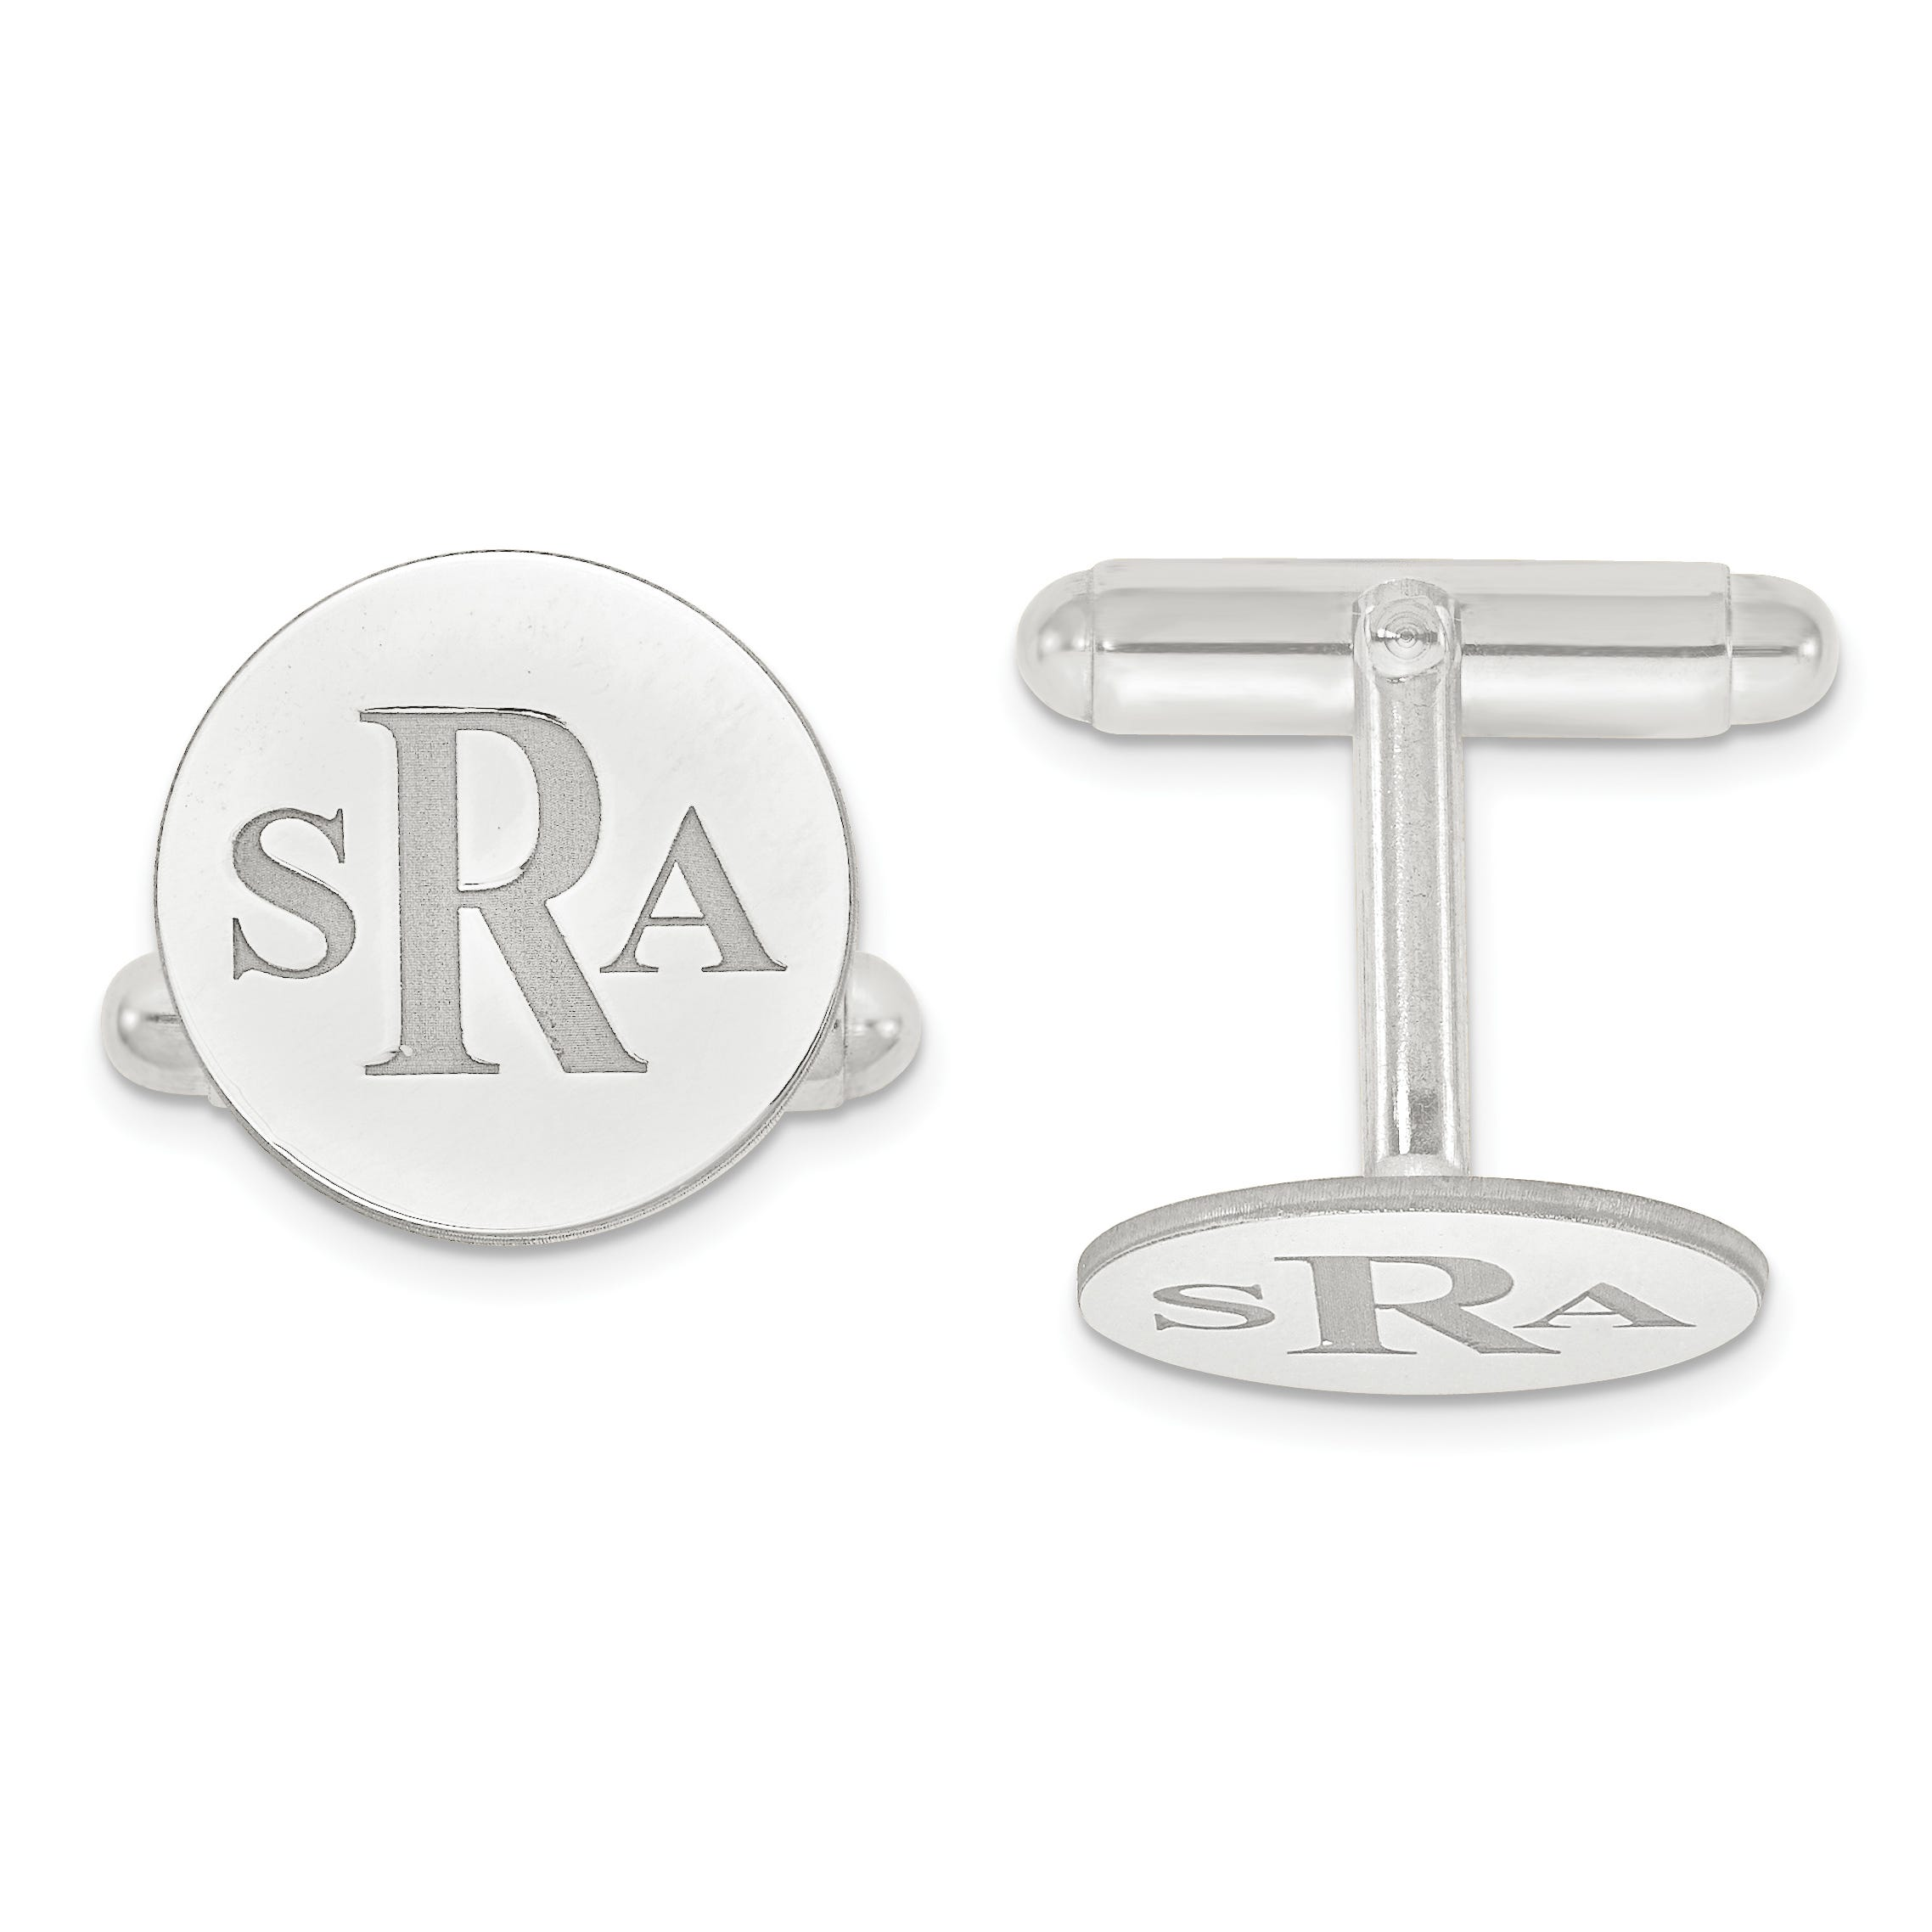 Recessed Letters Circle Monogram Cuff Links in Sterling Silver (up to 3 letters)